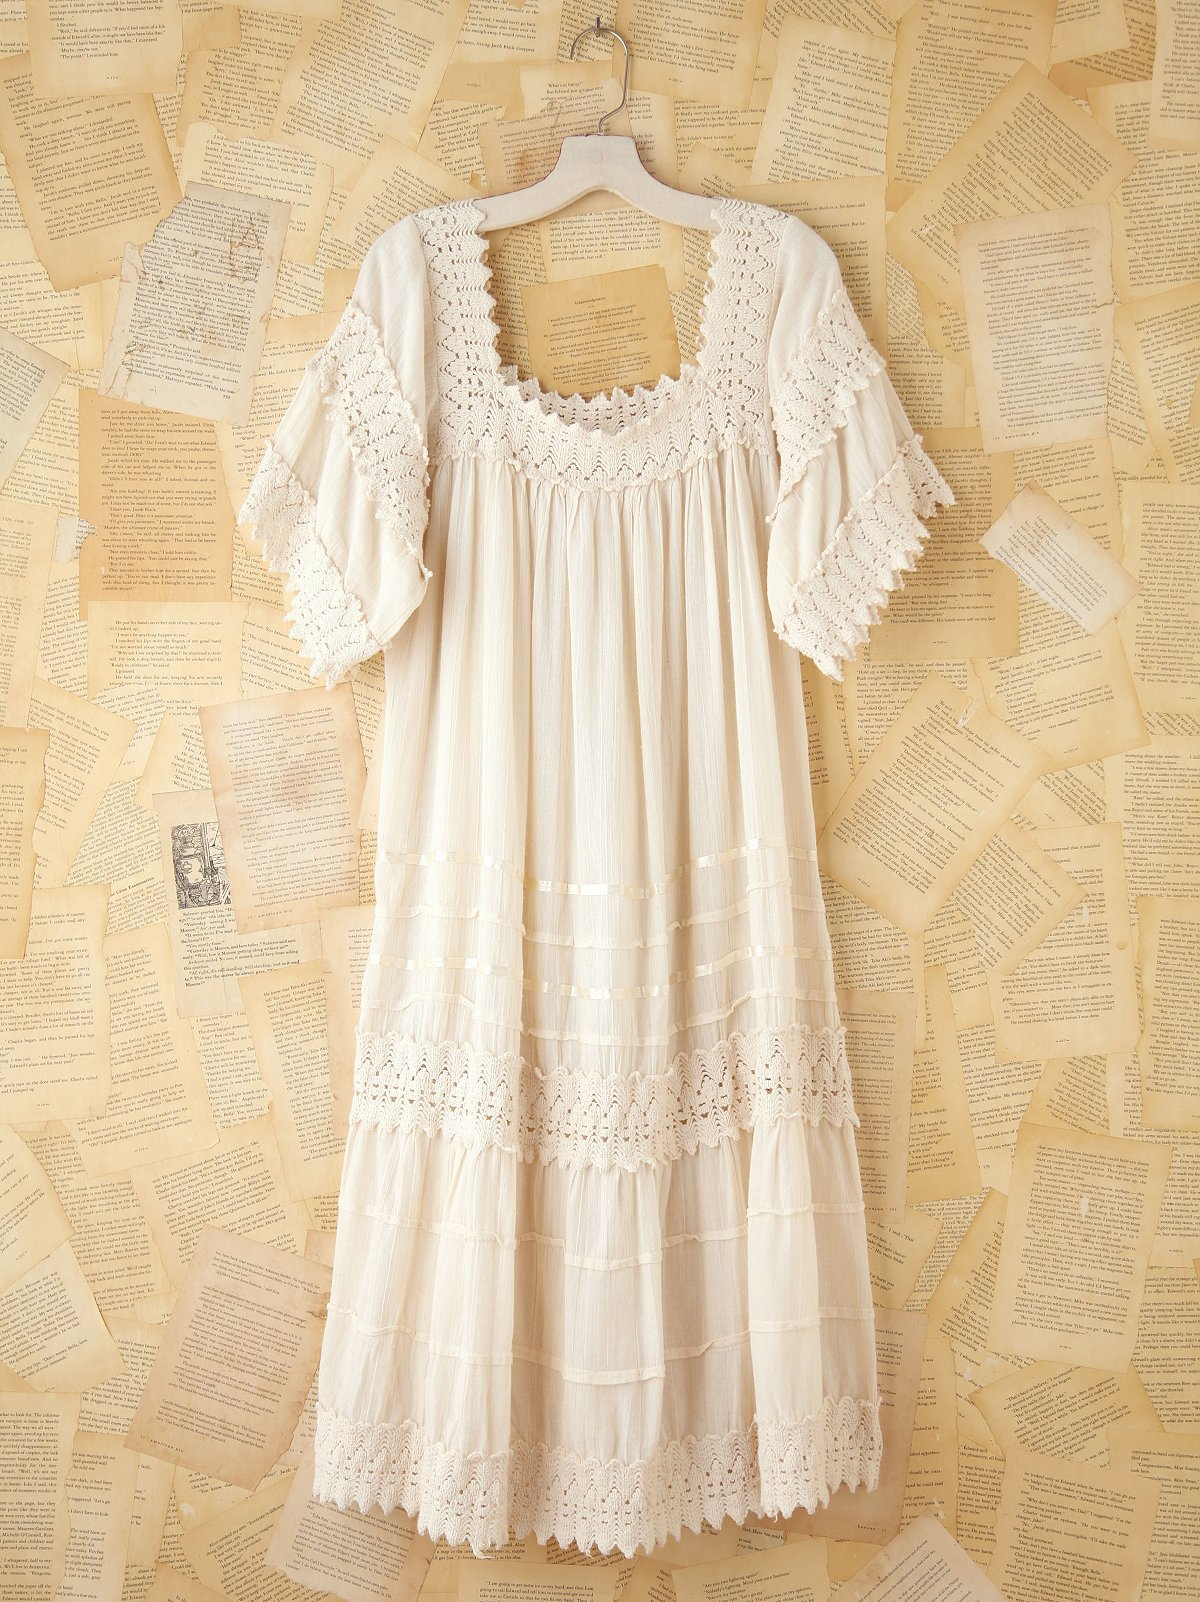 Vintage Gauzy Cotton Dress